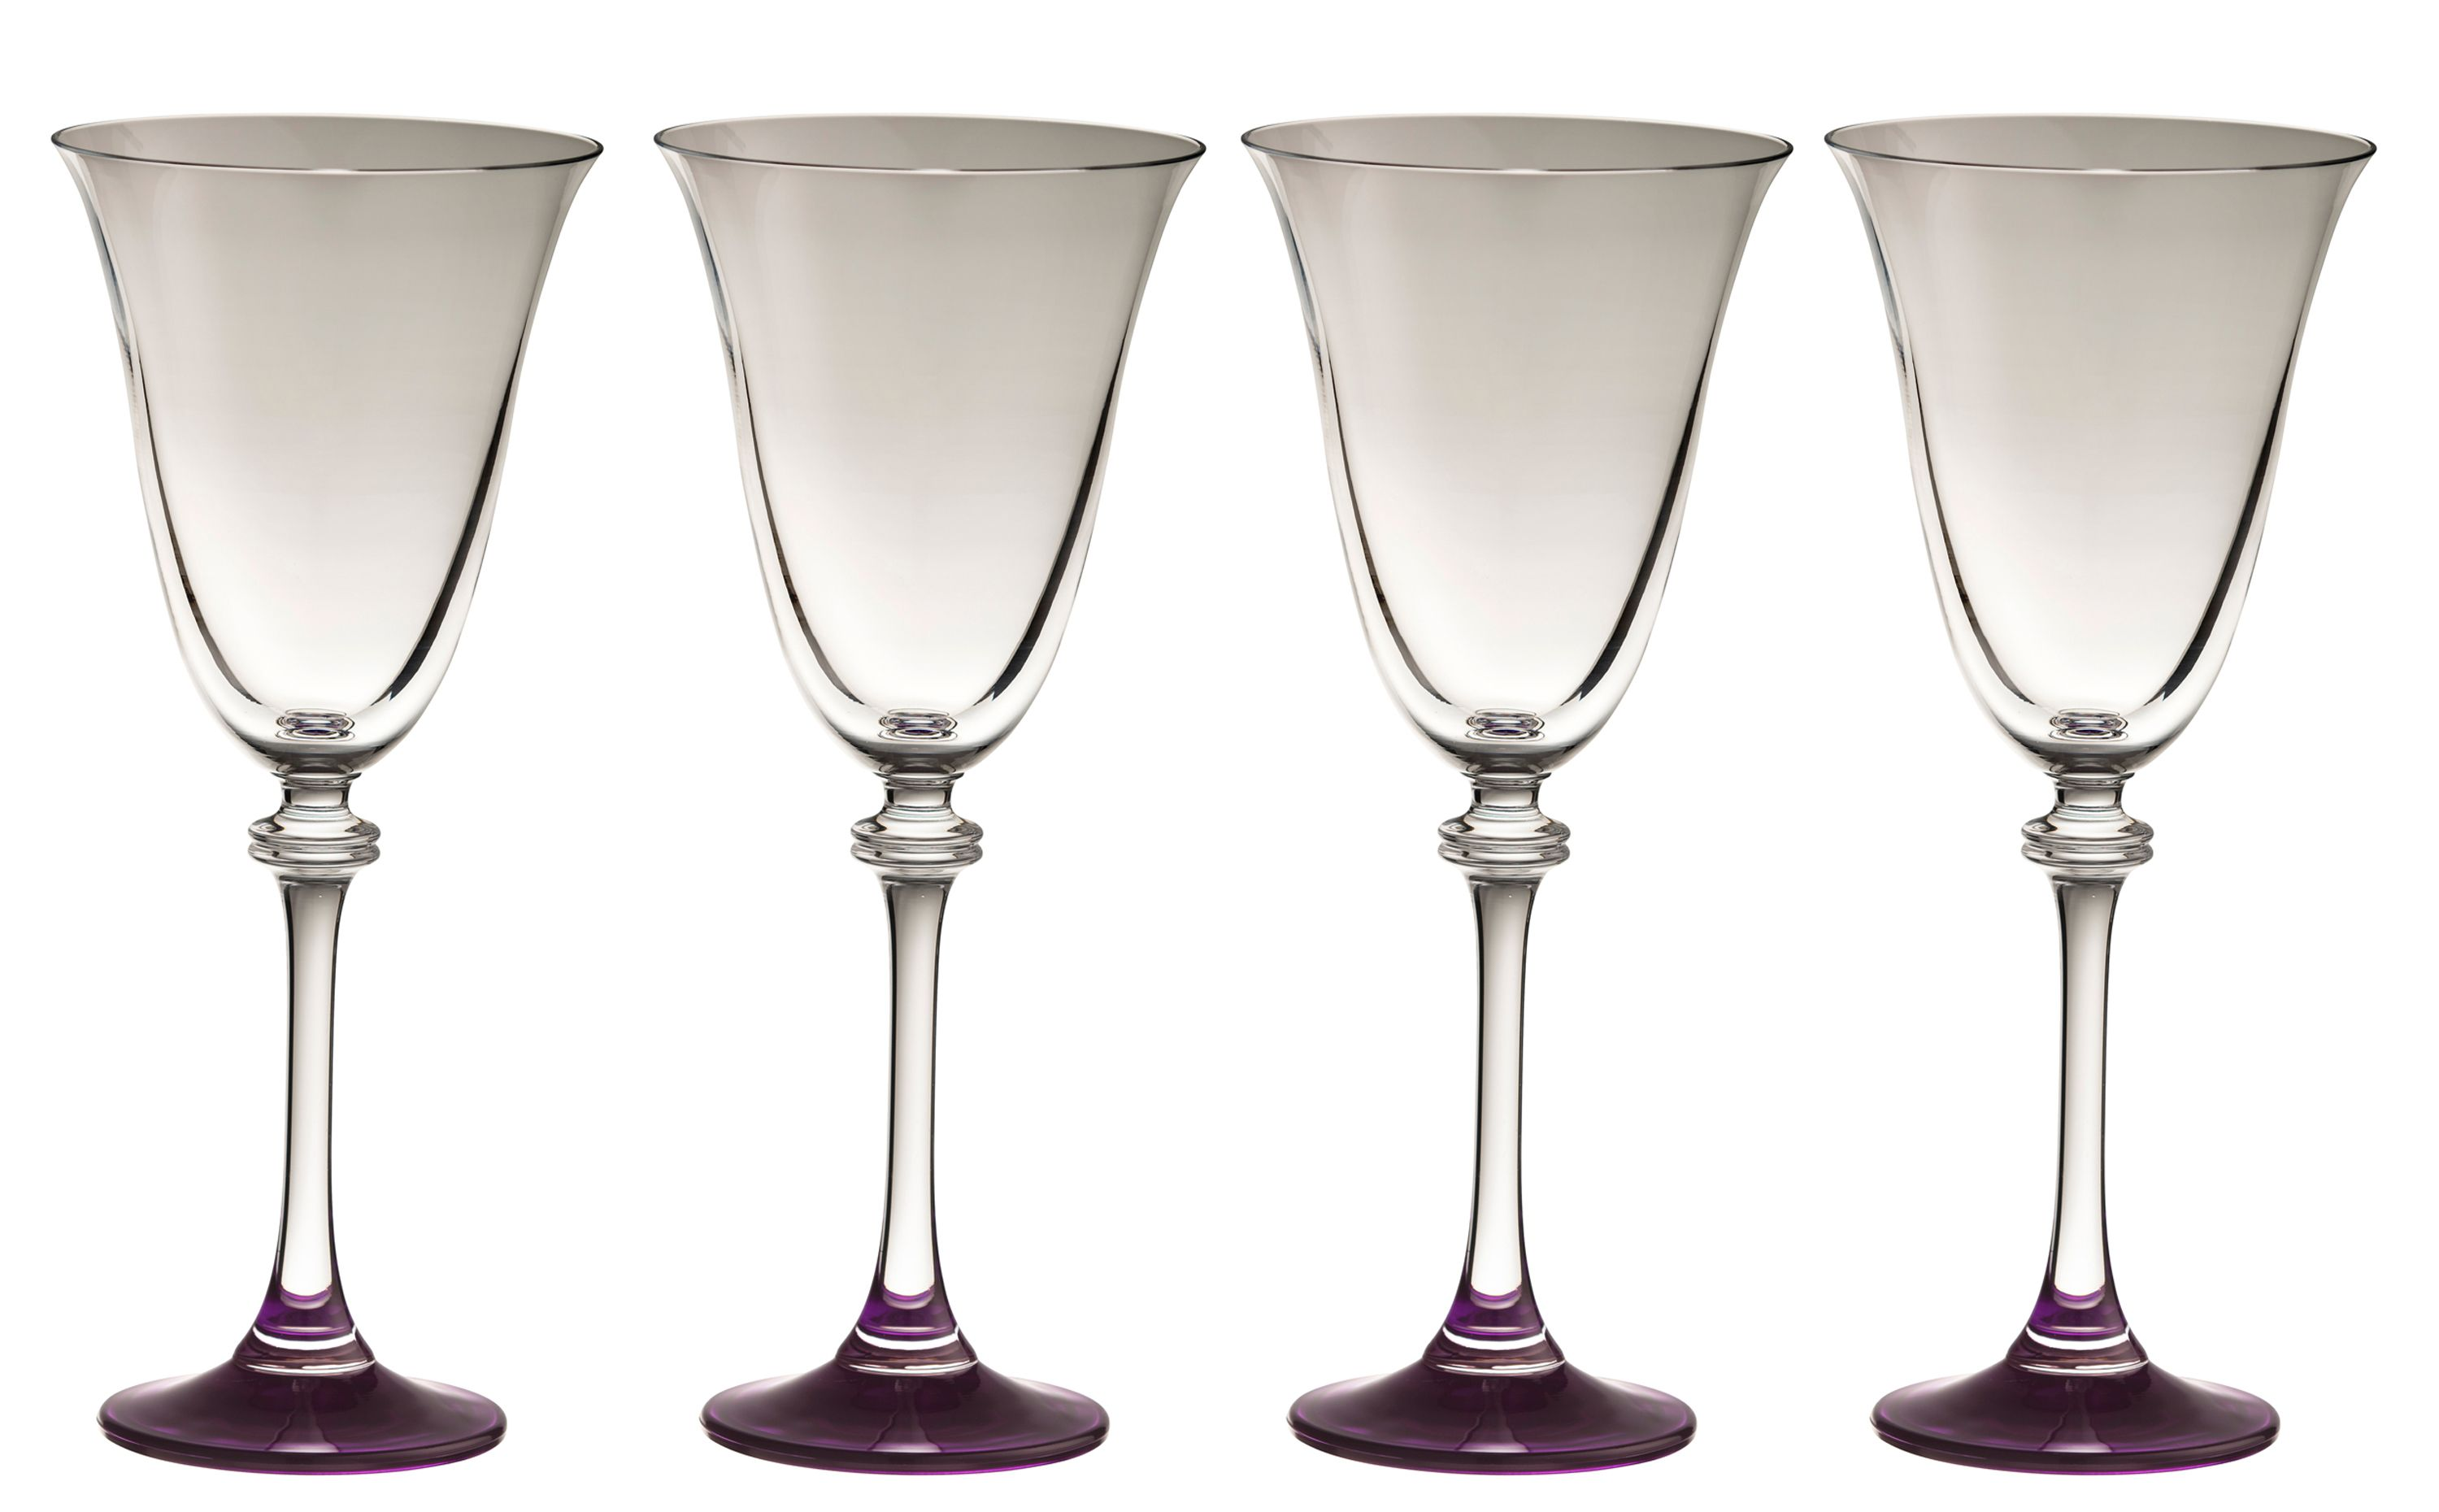 Galway Galway Liberty amethyst goblets (set of 4)